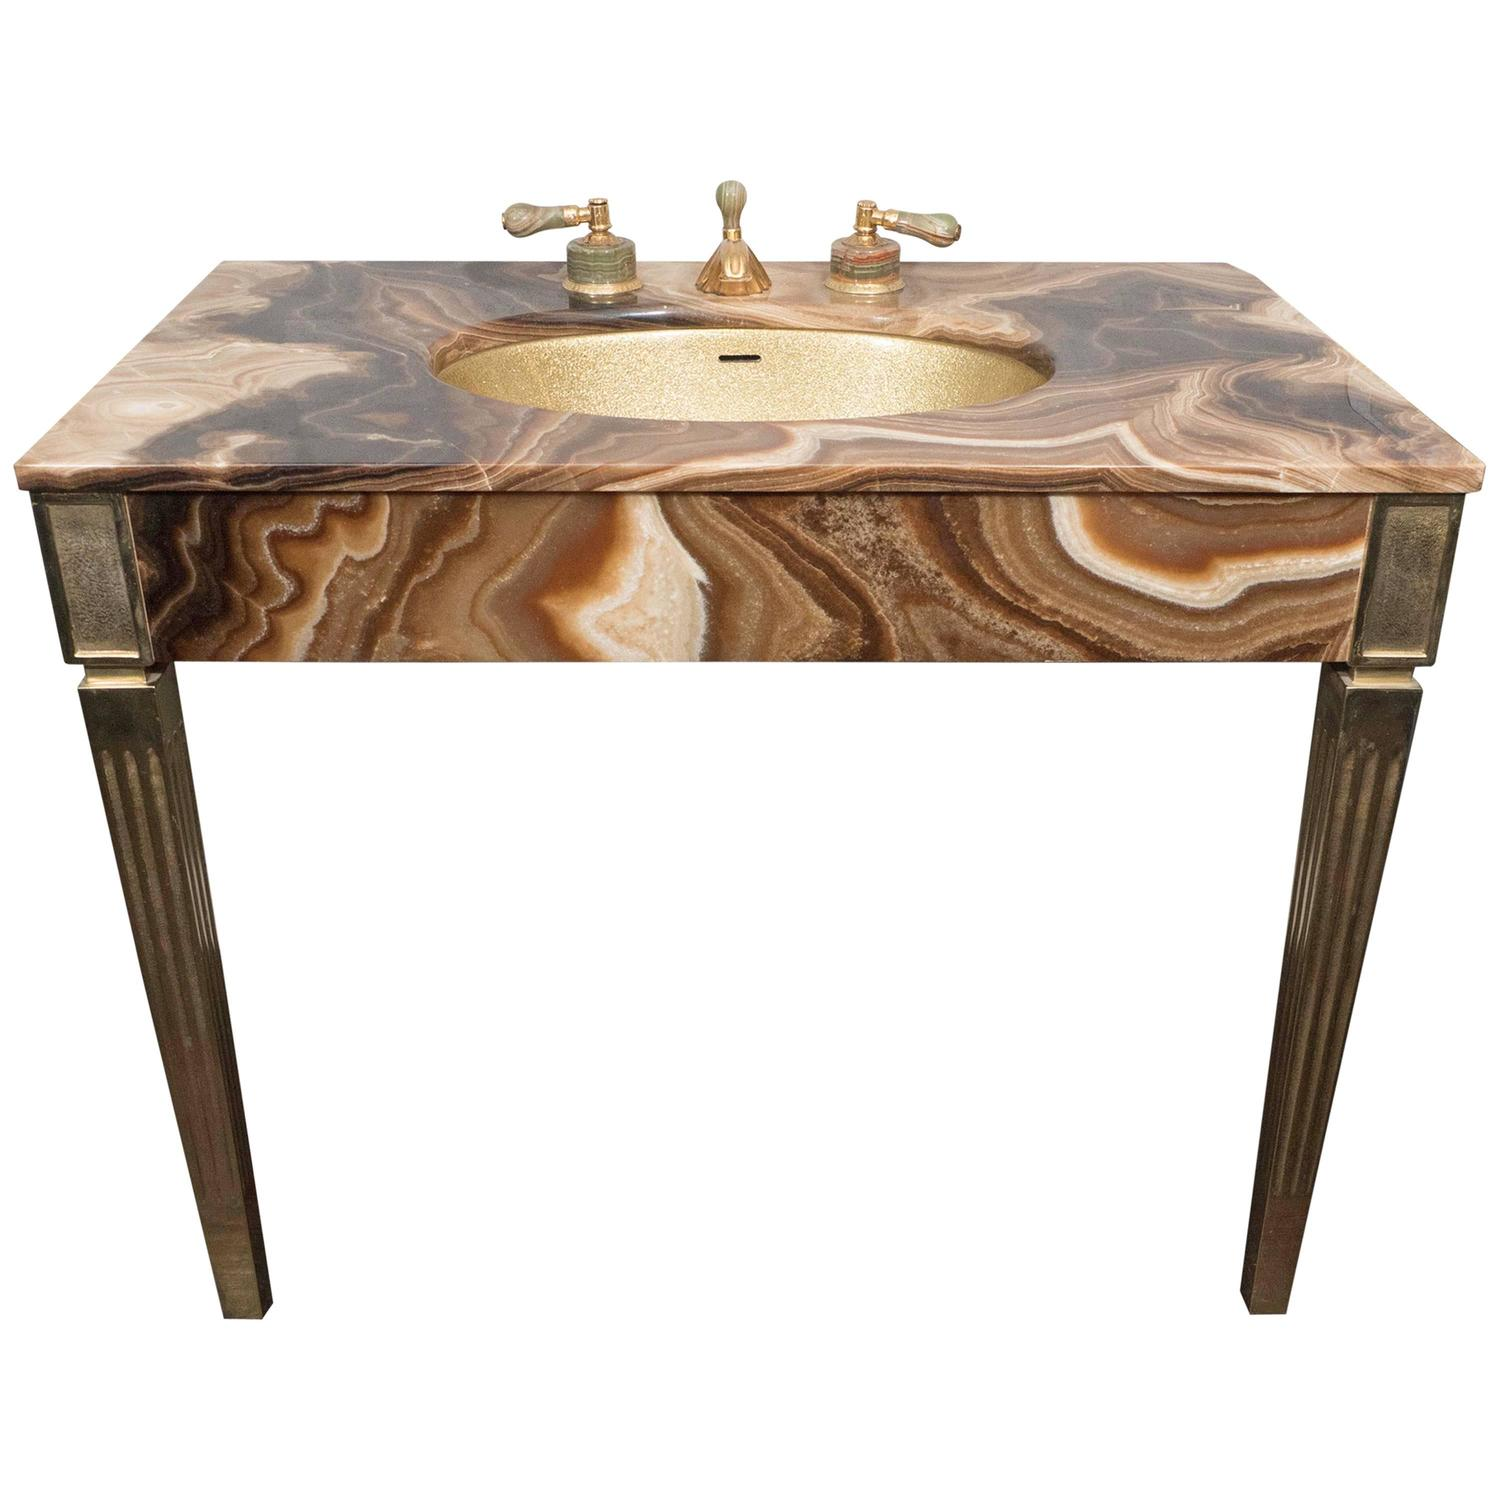 Sienna Marble Vintage Bathroom Vanity With Gold Glitter Sink By Sherle Wagner For Sale At 1stdibs